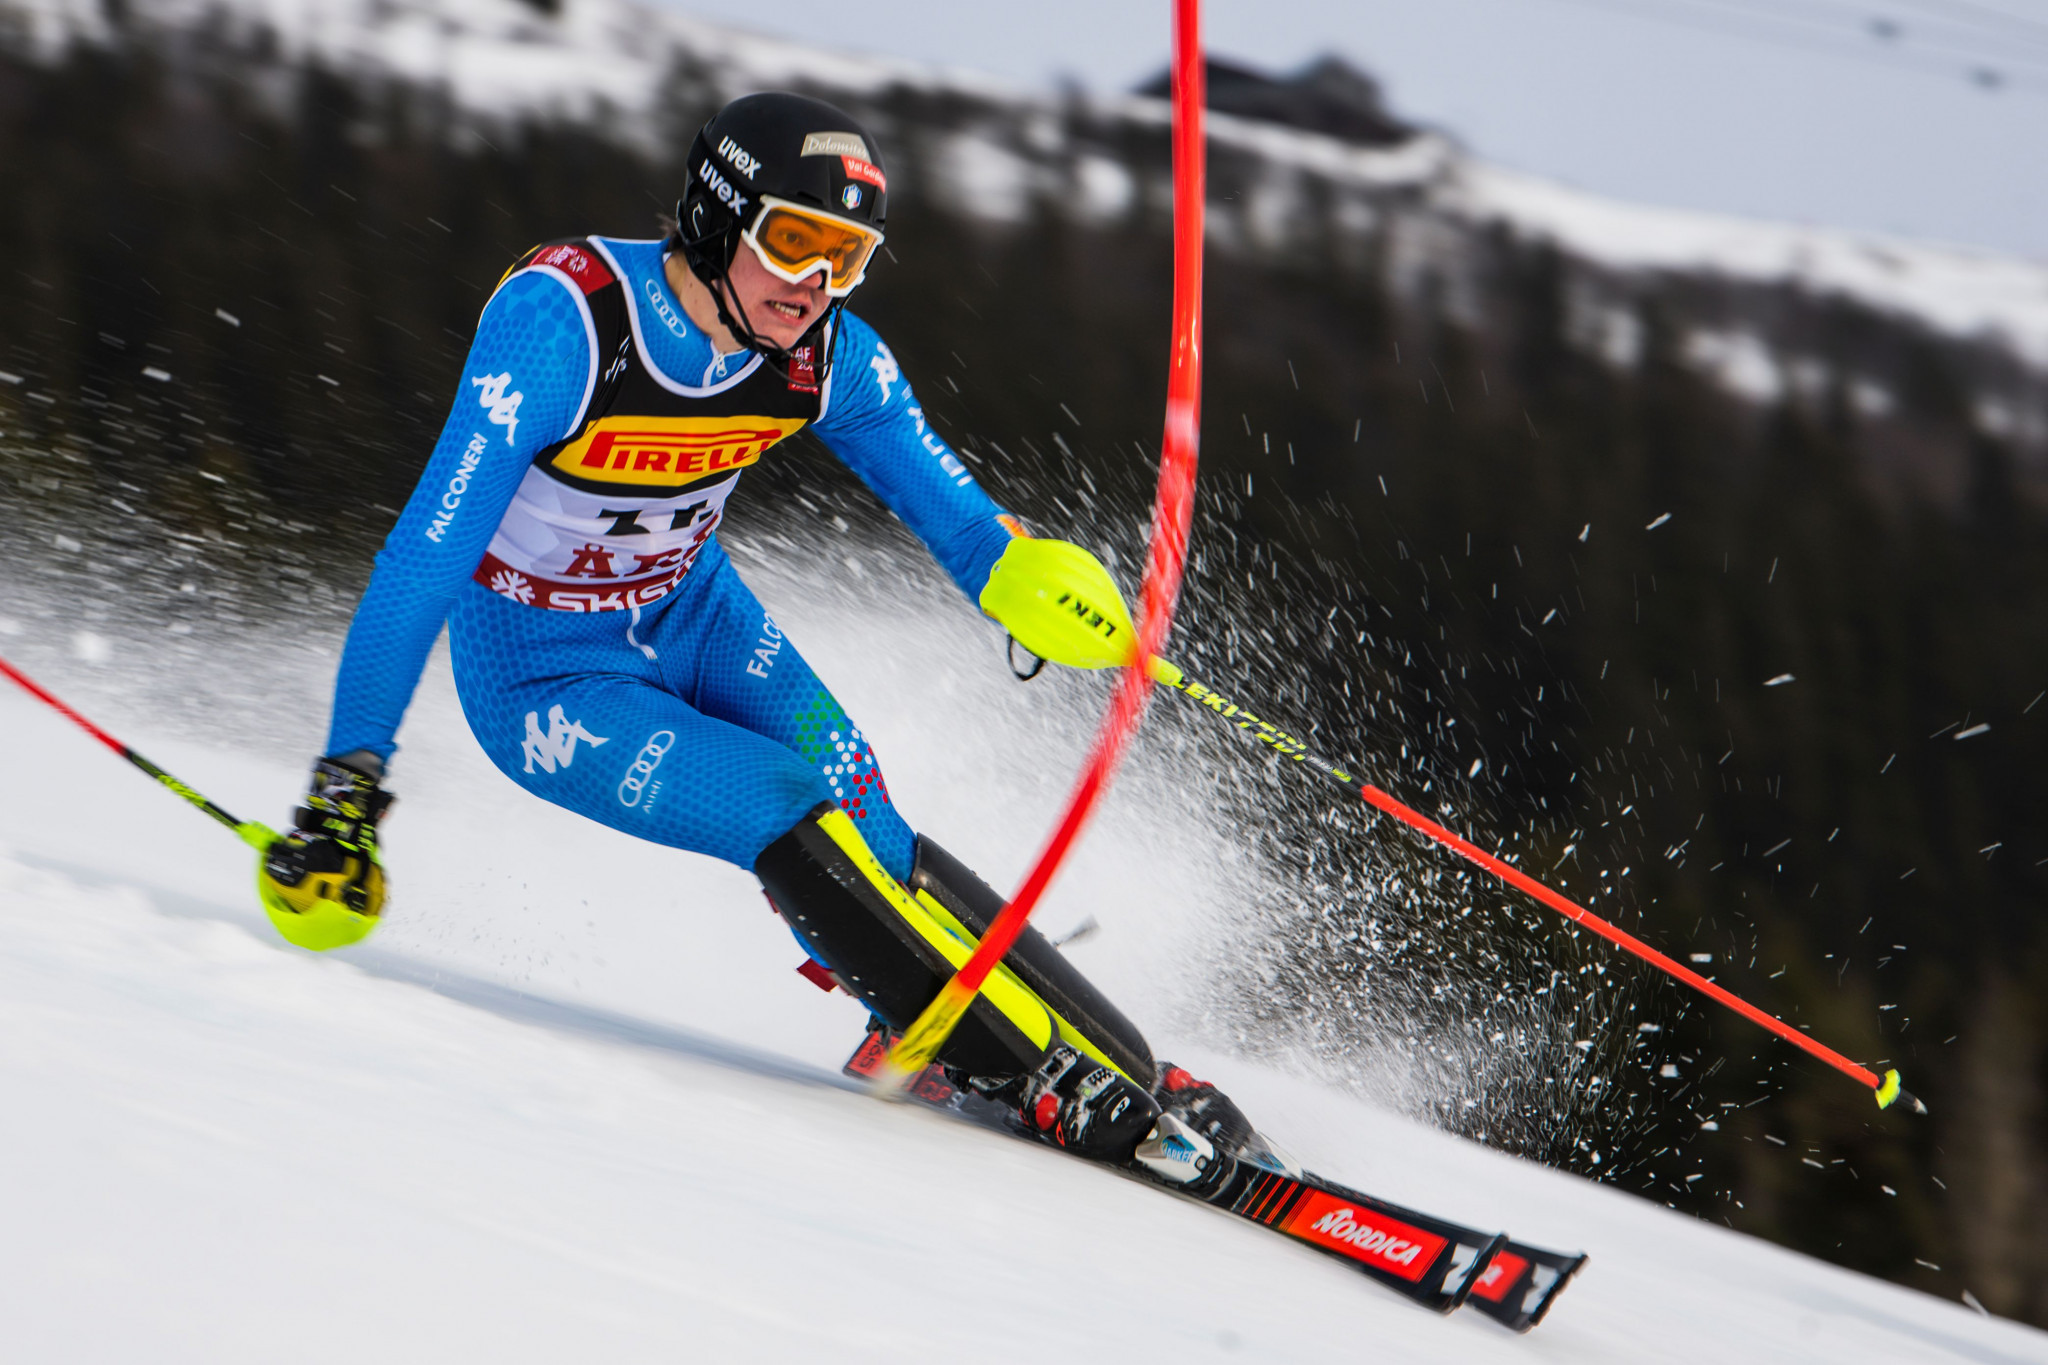 Alex Vinatzer will lead Italy's hopes in the men's slalom ©Getty Images